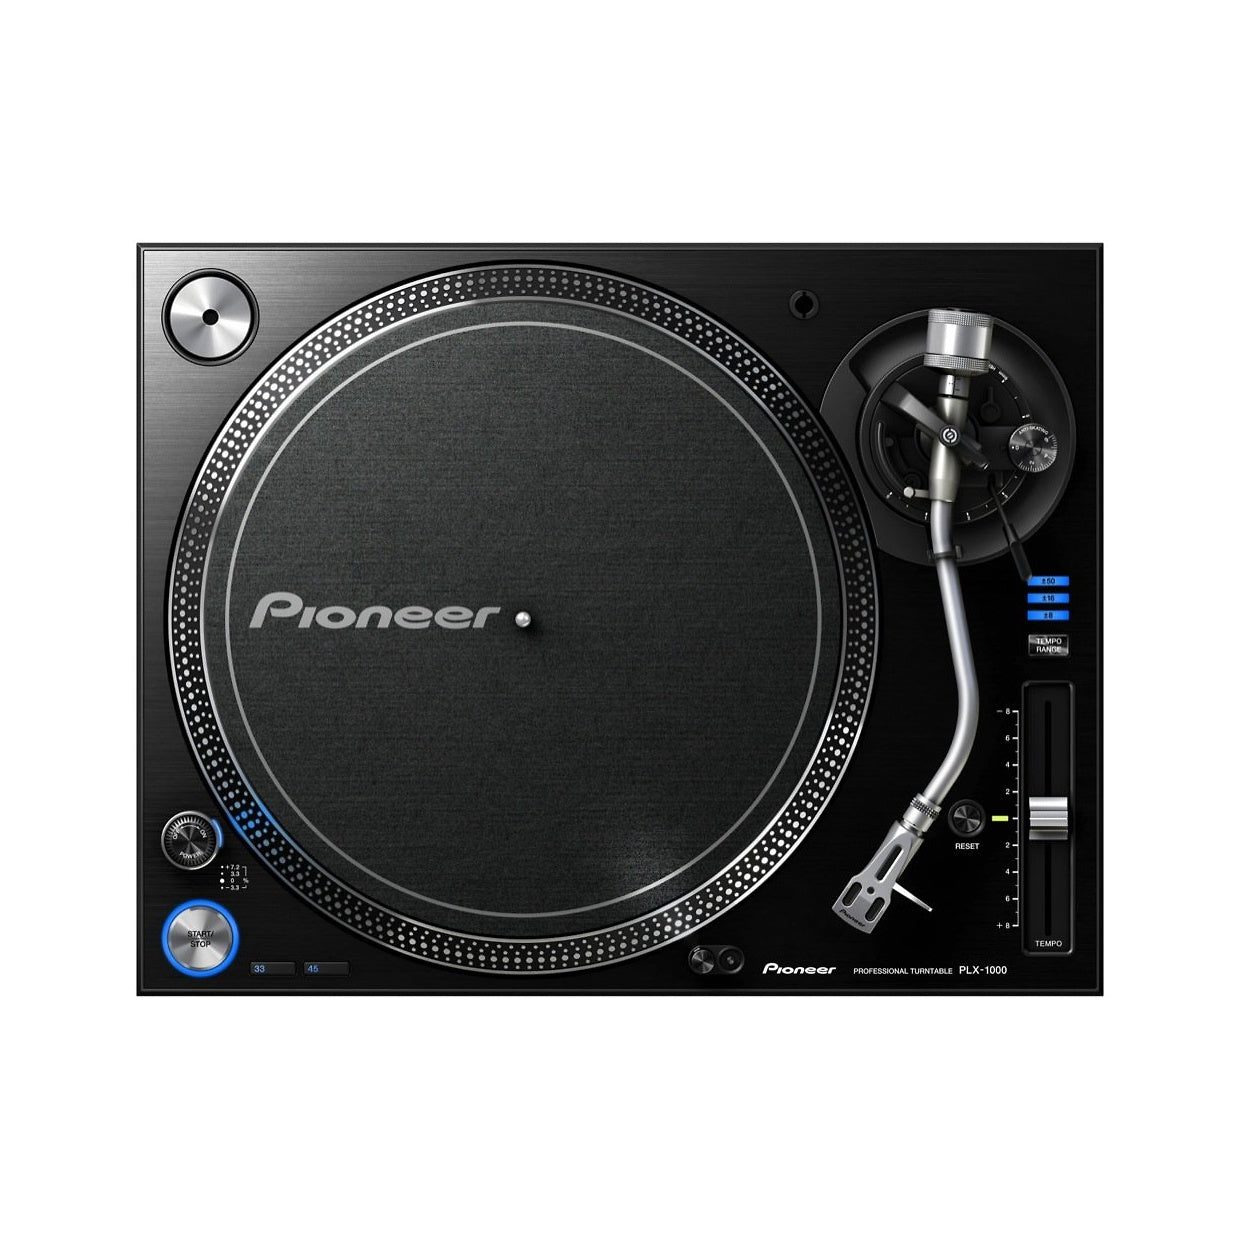 Pioneer DJ PLX-1000 Direct Drive Turntable